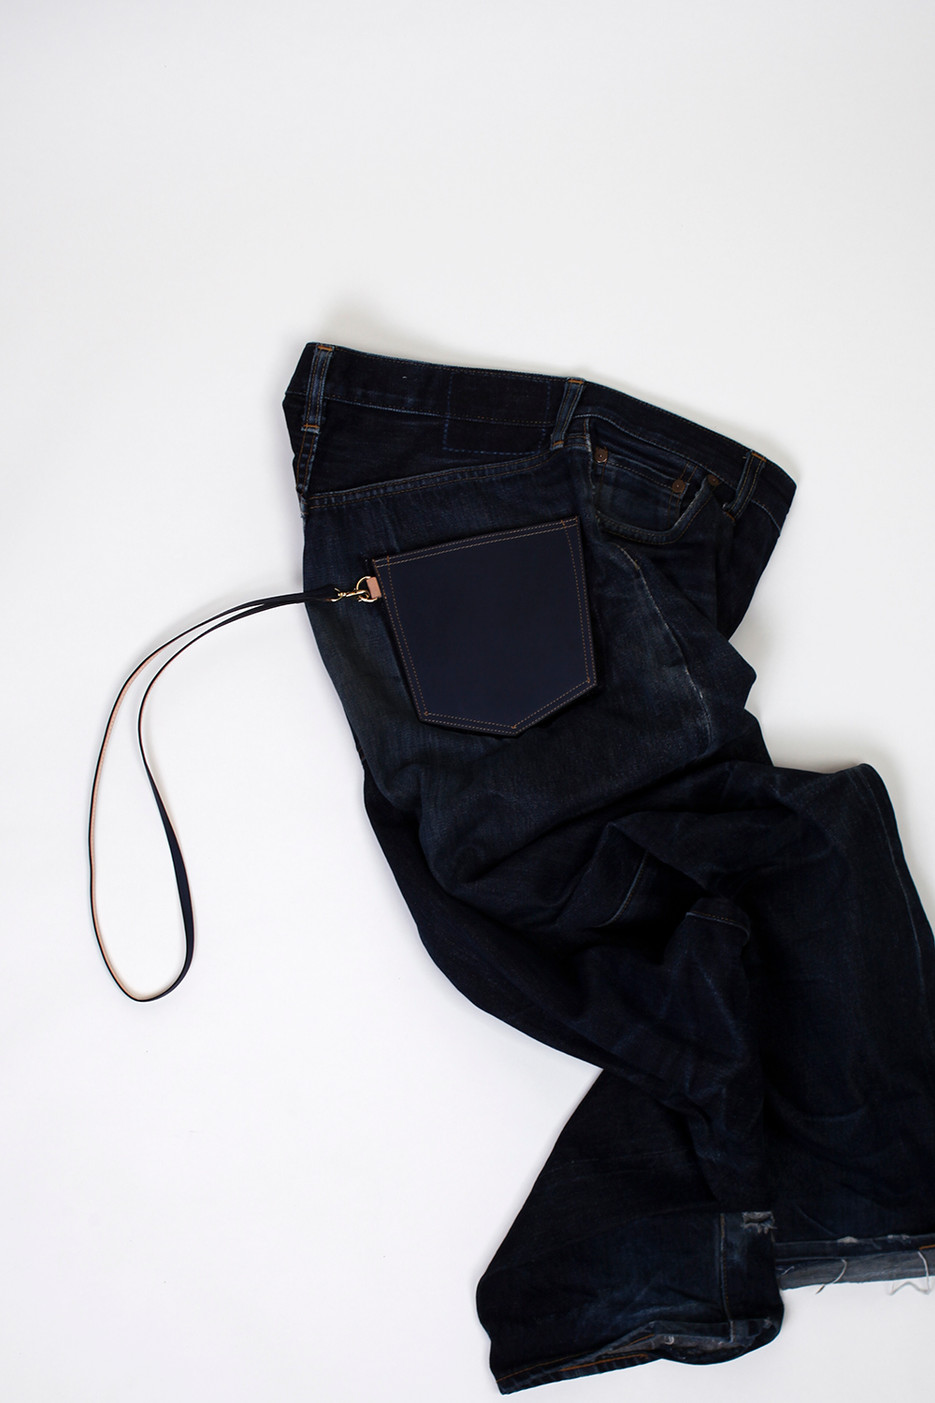 The Purse of jeans back Pocket